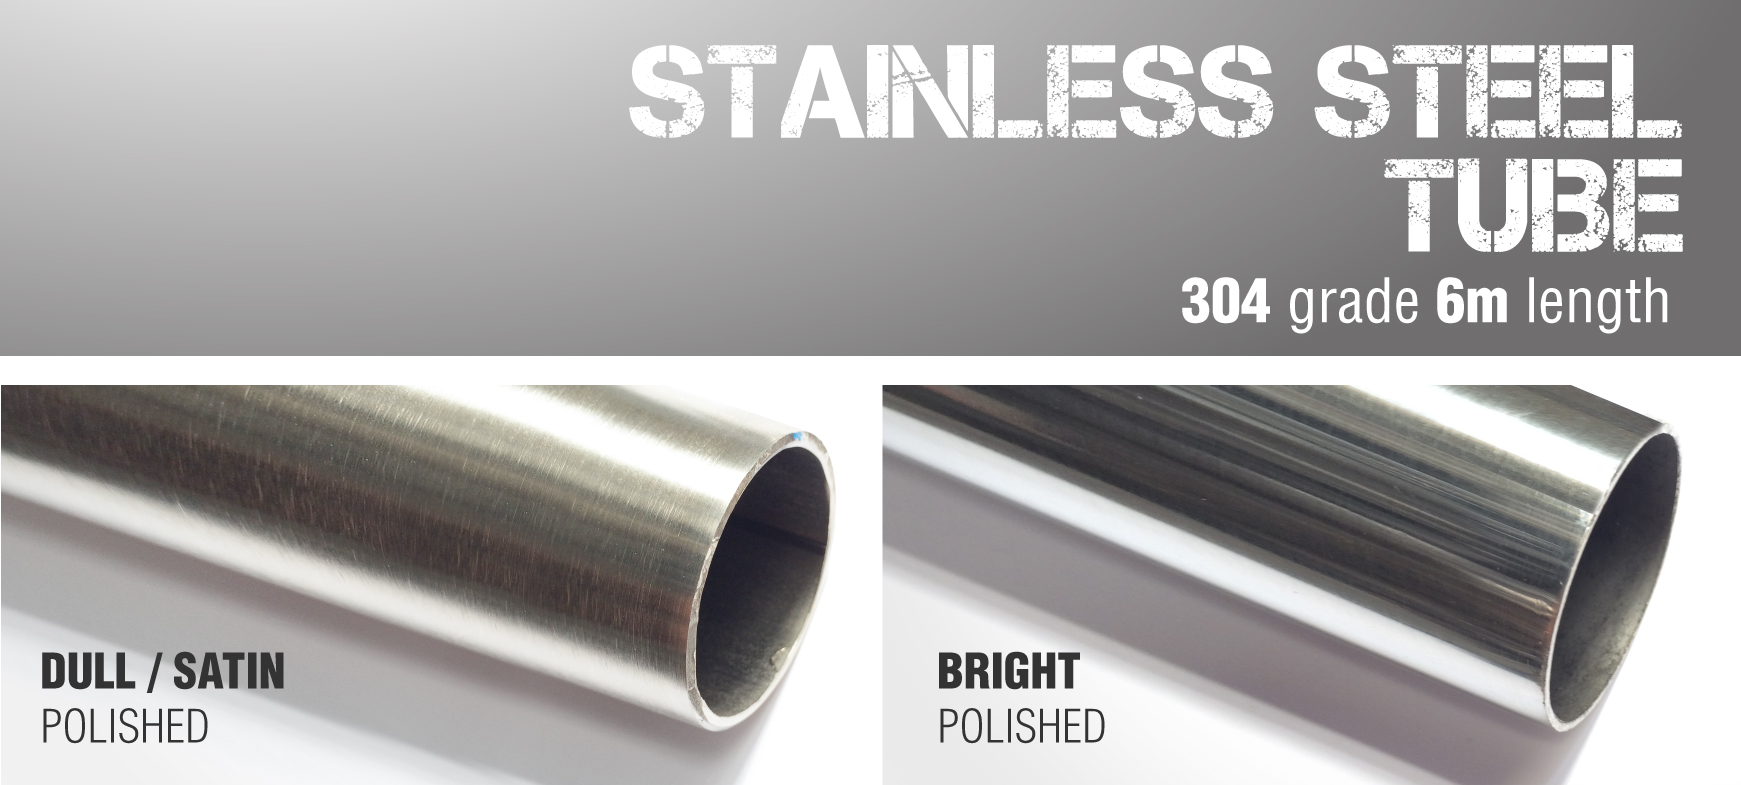 6m lengths 304 Grade Stainless Steel Tube